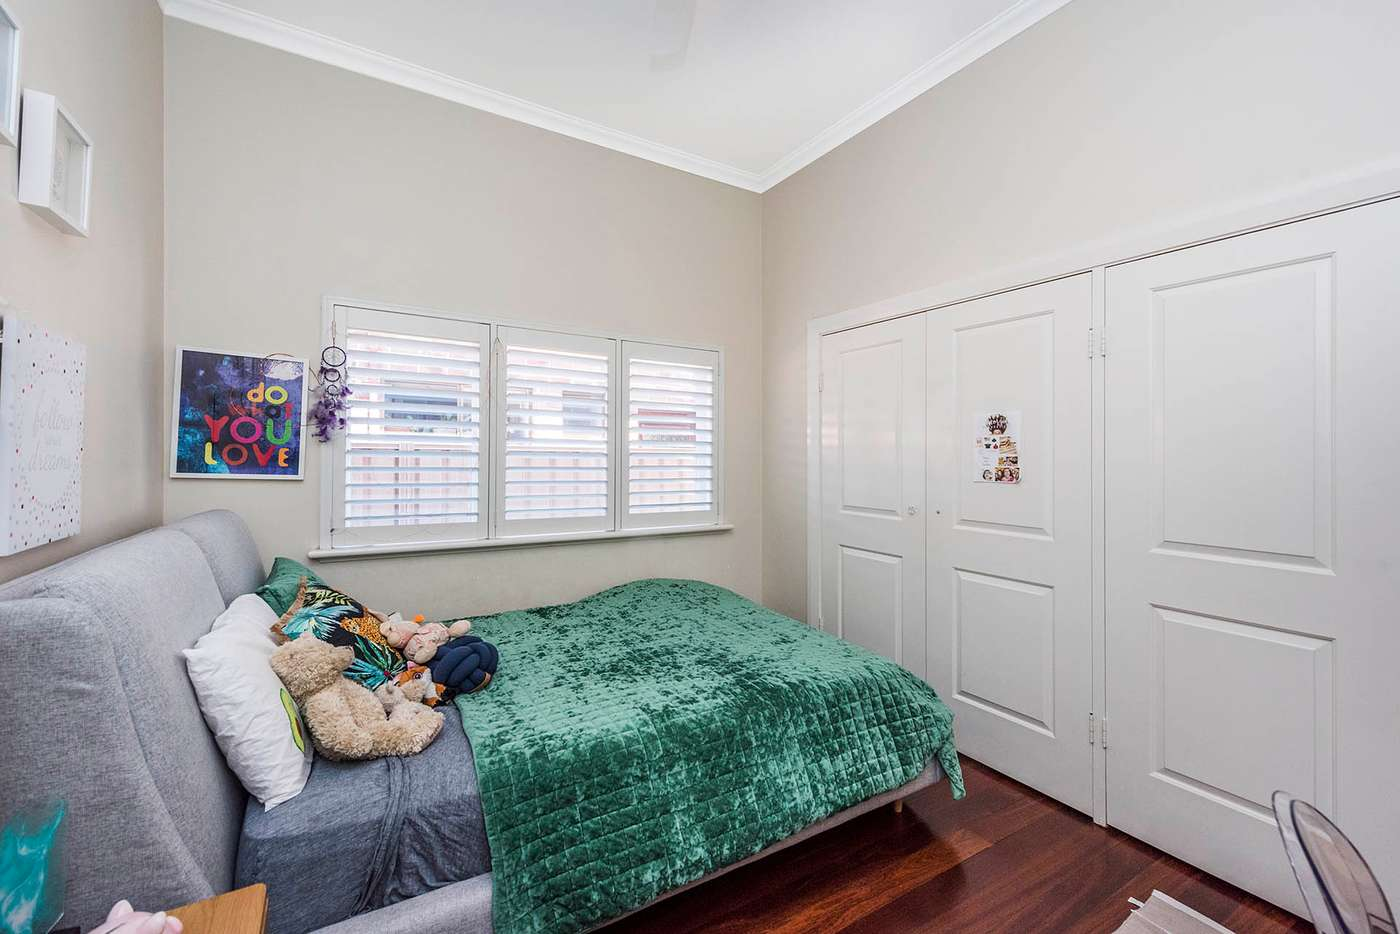 Sixth view of Homely house listing, 42 ELIZABETH STREET, North Perth WA 6006